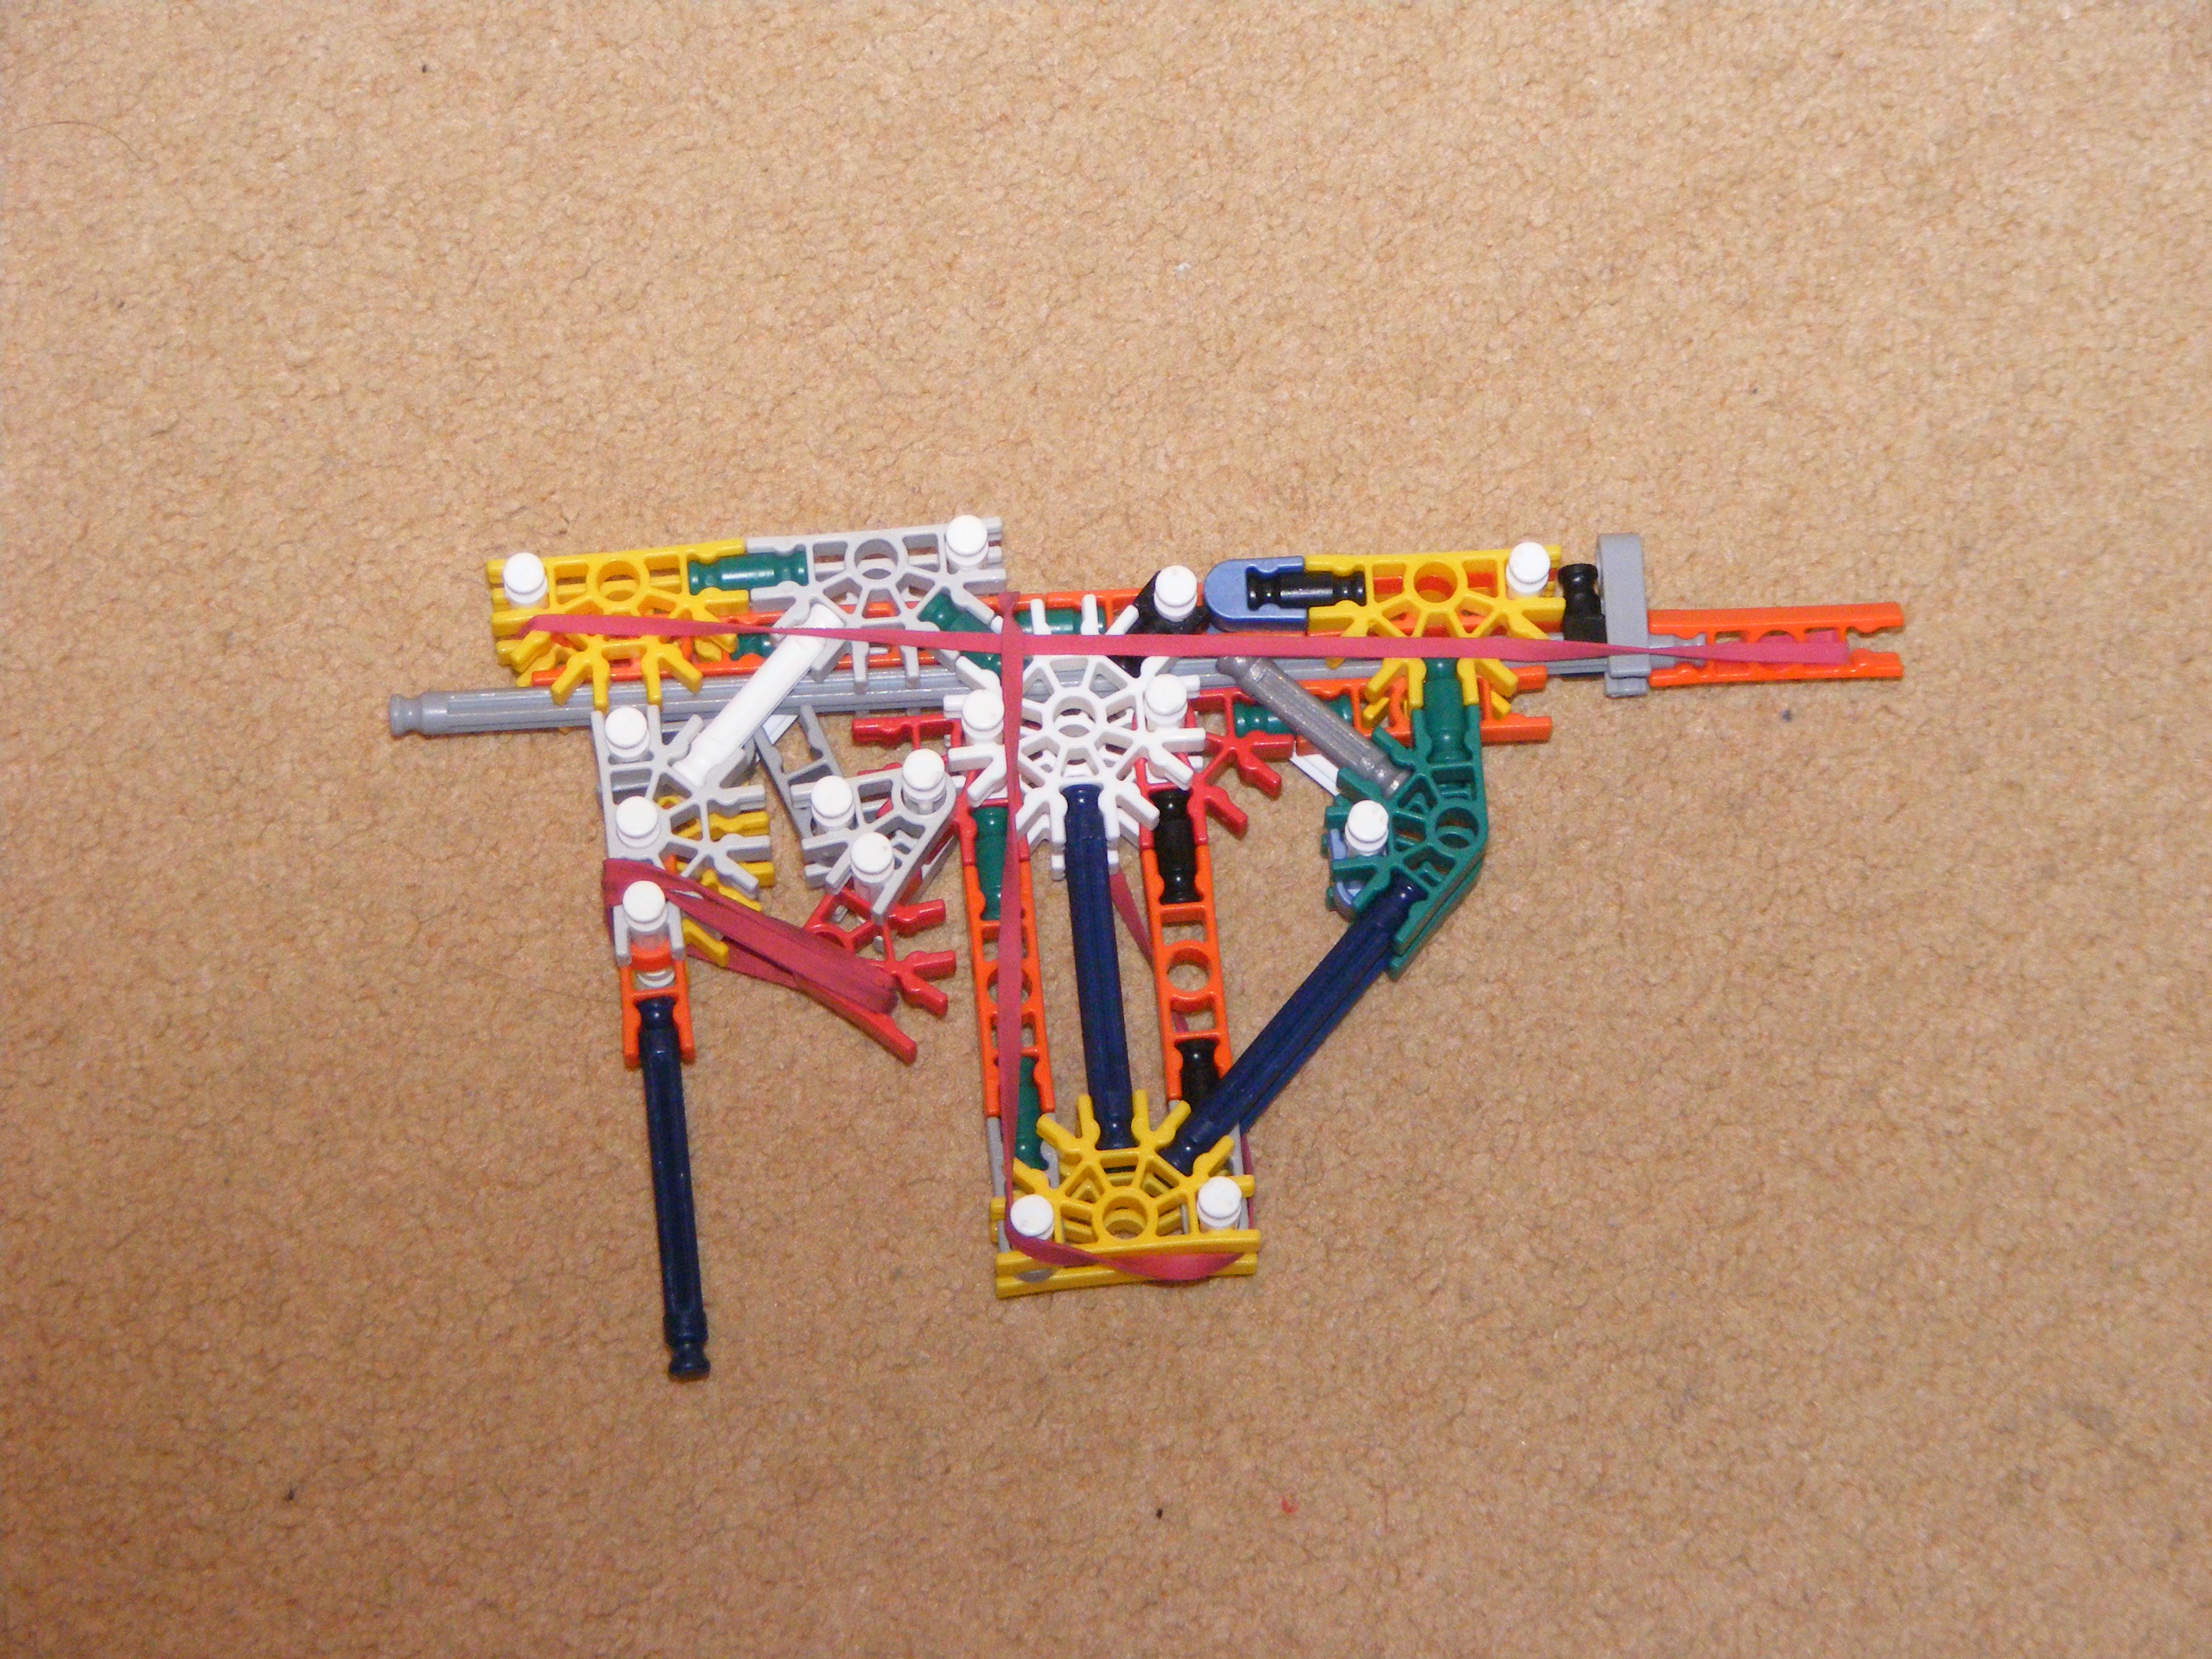 Picture of K'nex Gun With Mag, True Trigger and Sight Base.